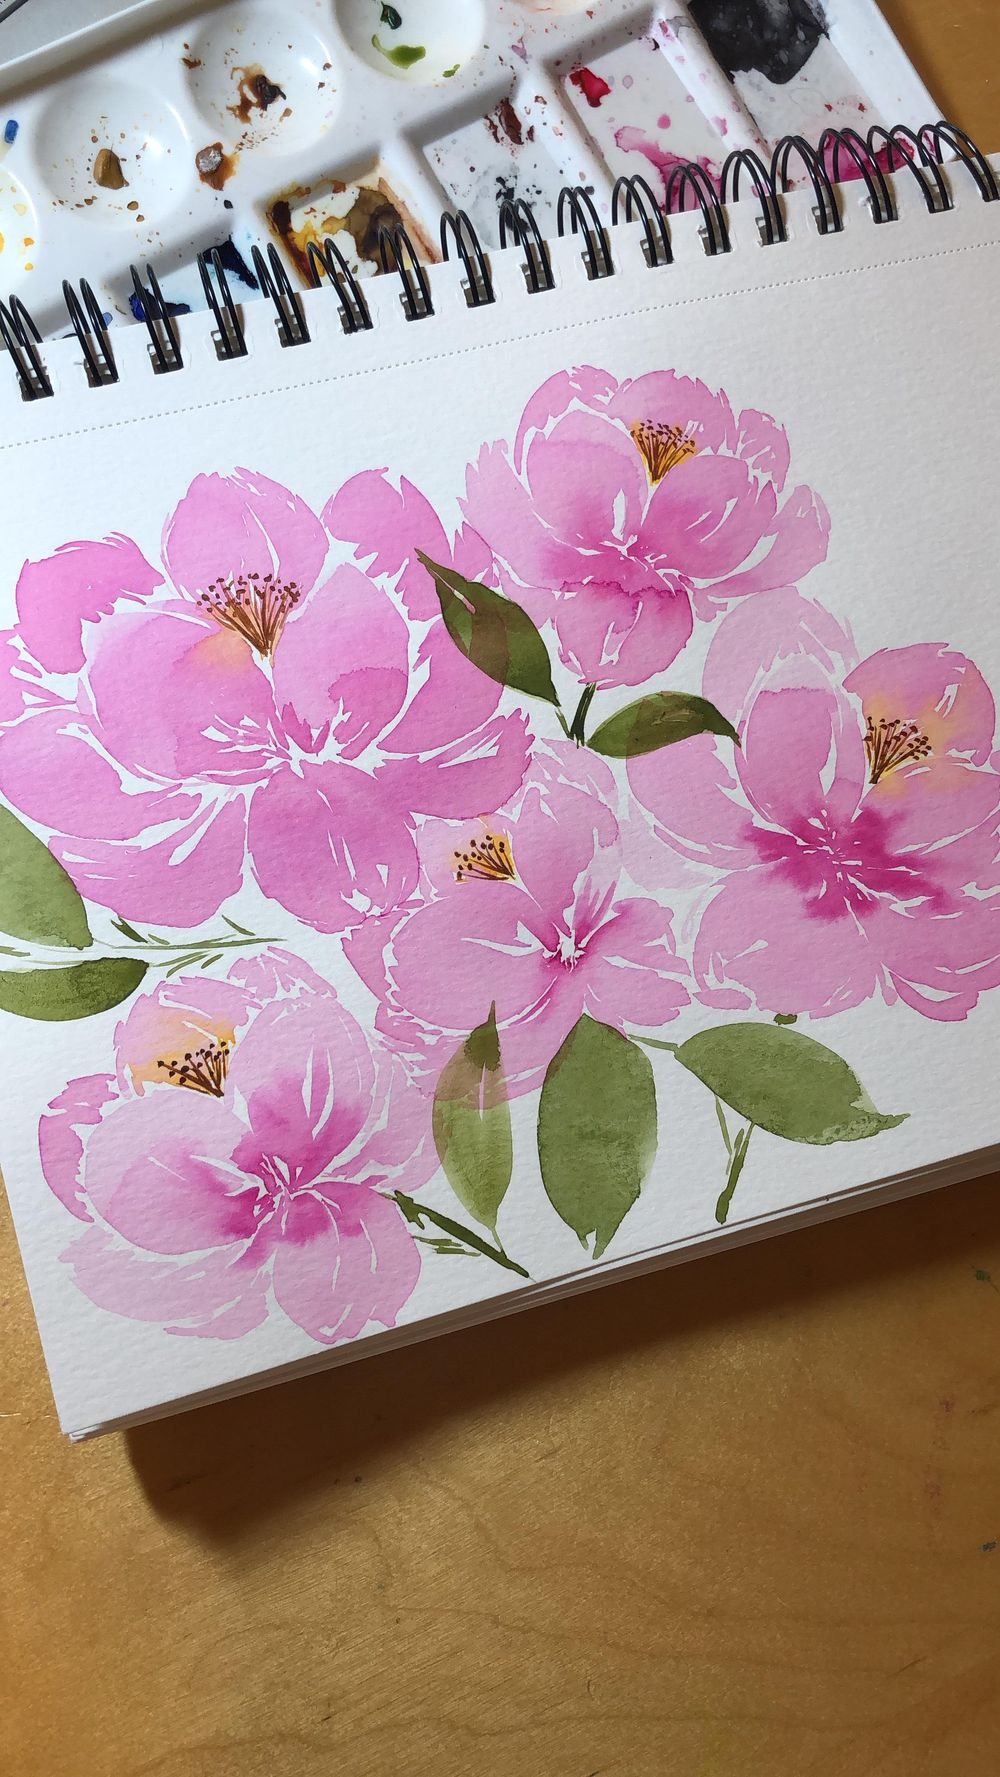 Peonies with Joly - image 3 - student project